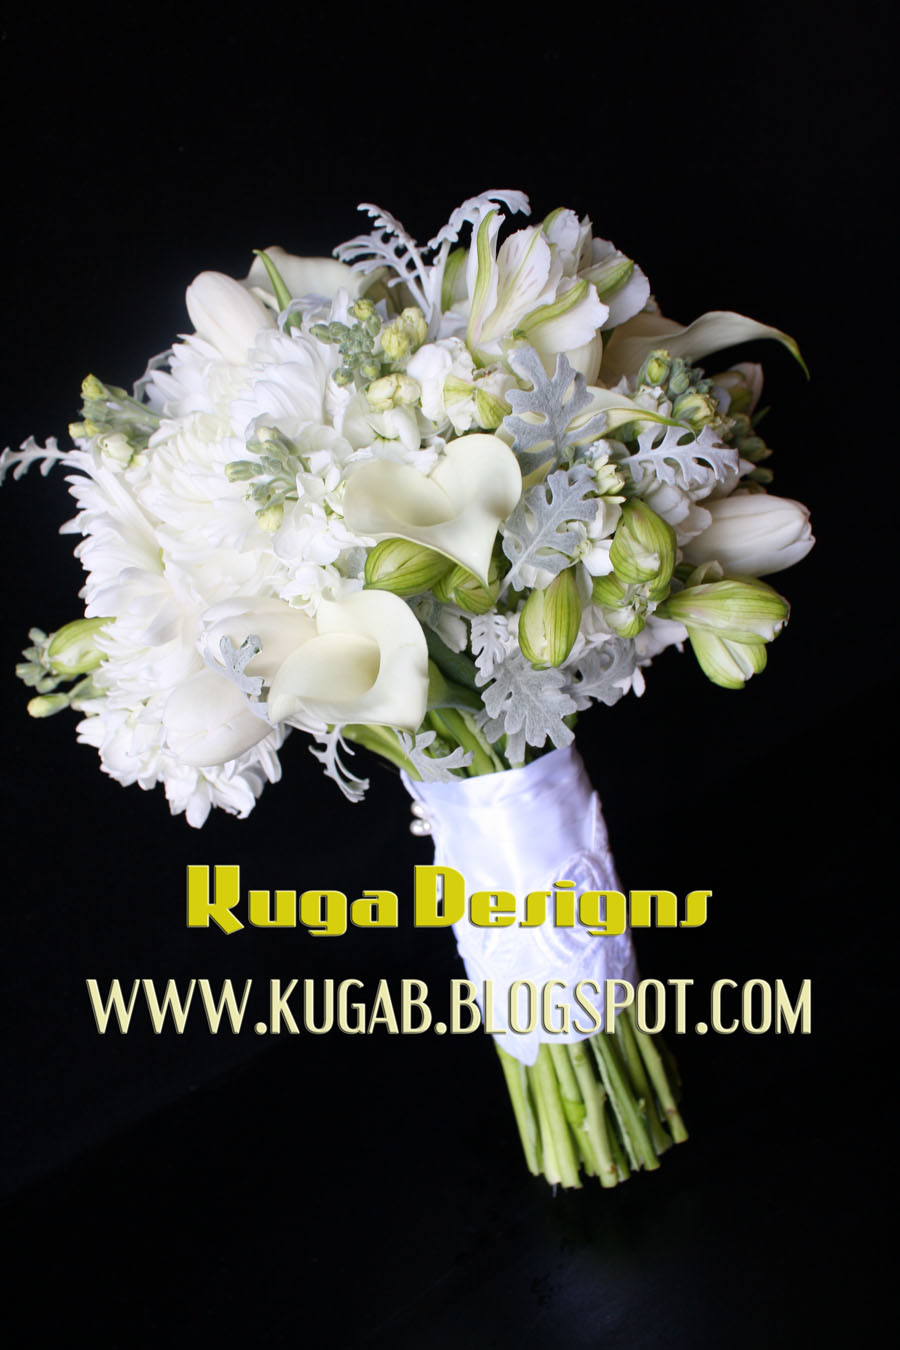 Kuga designs white and silver wedding bouquet tuesday december 28 2010 mightylinksfo